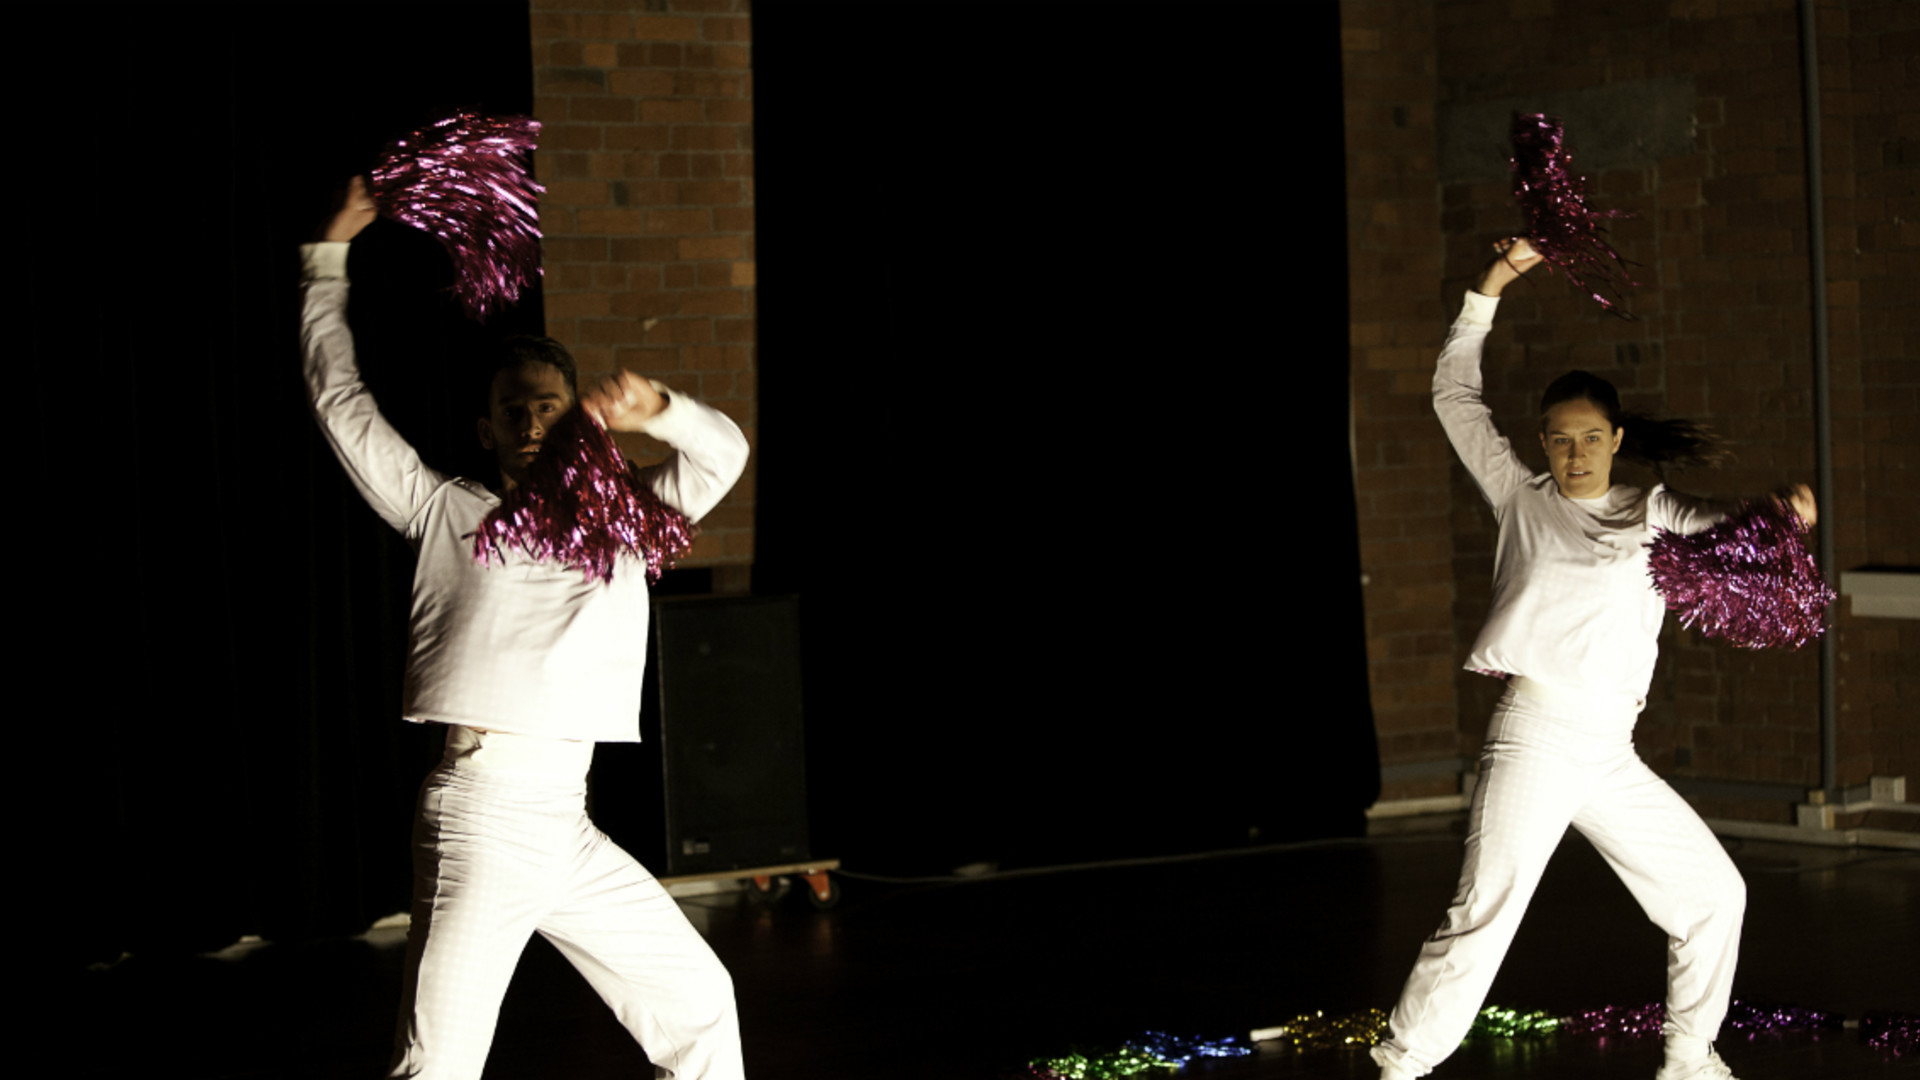 Two dancers dressed in white dance energetically and in unison with pink glittery pom poms